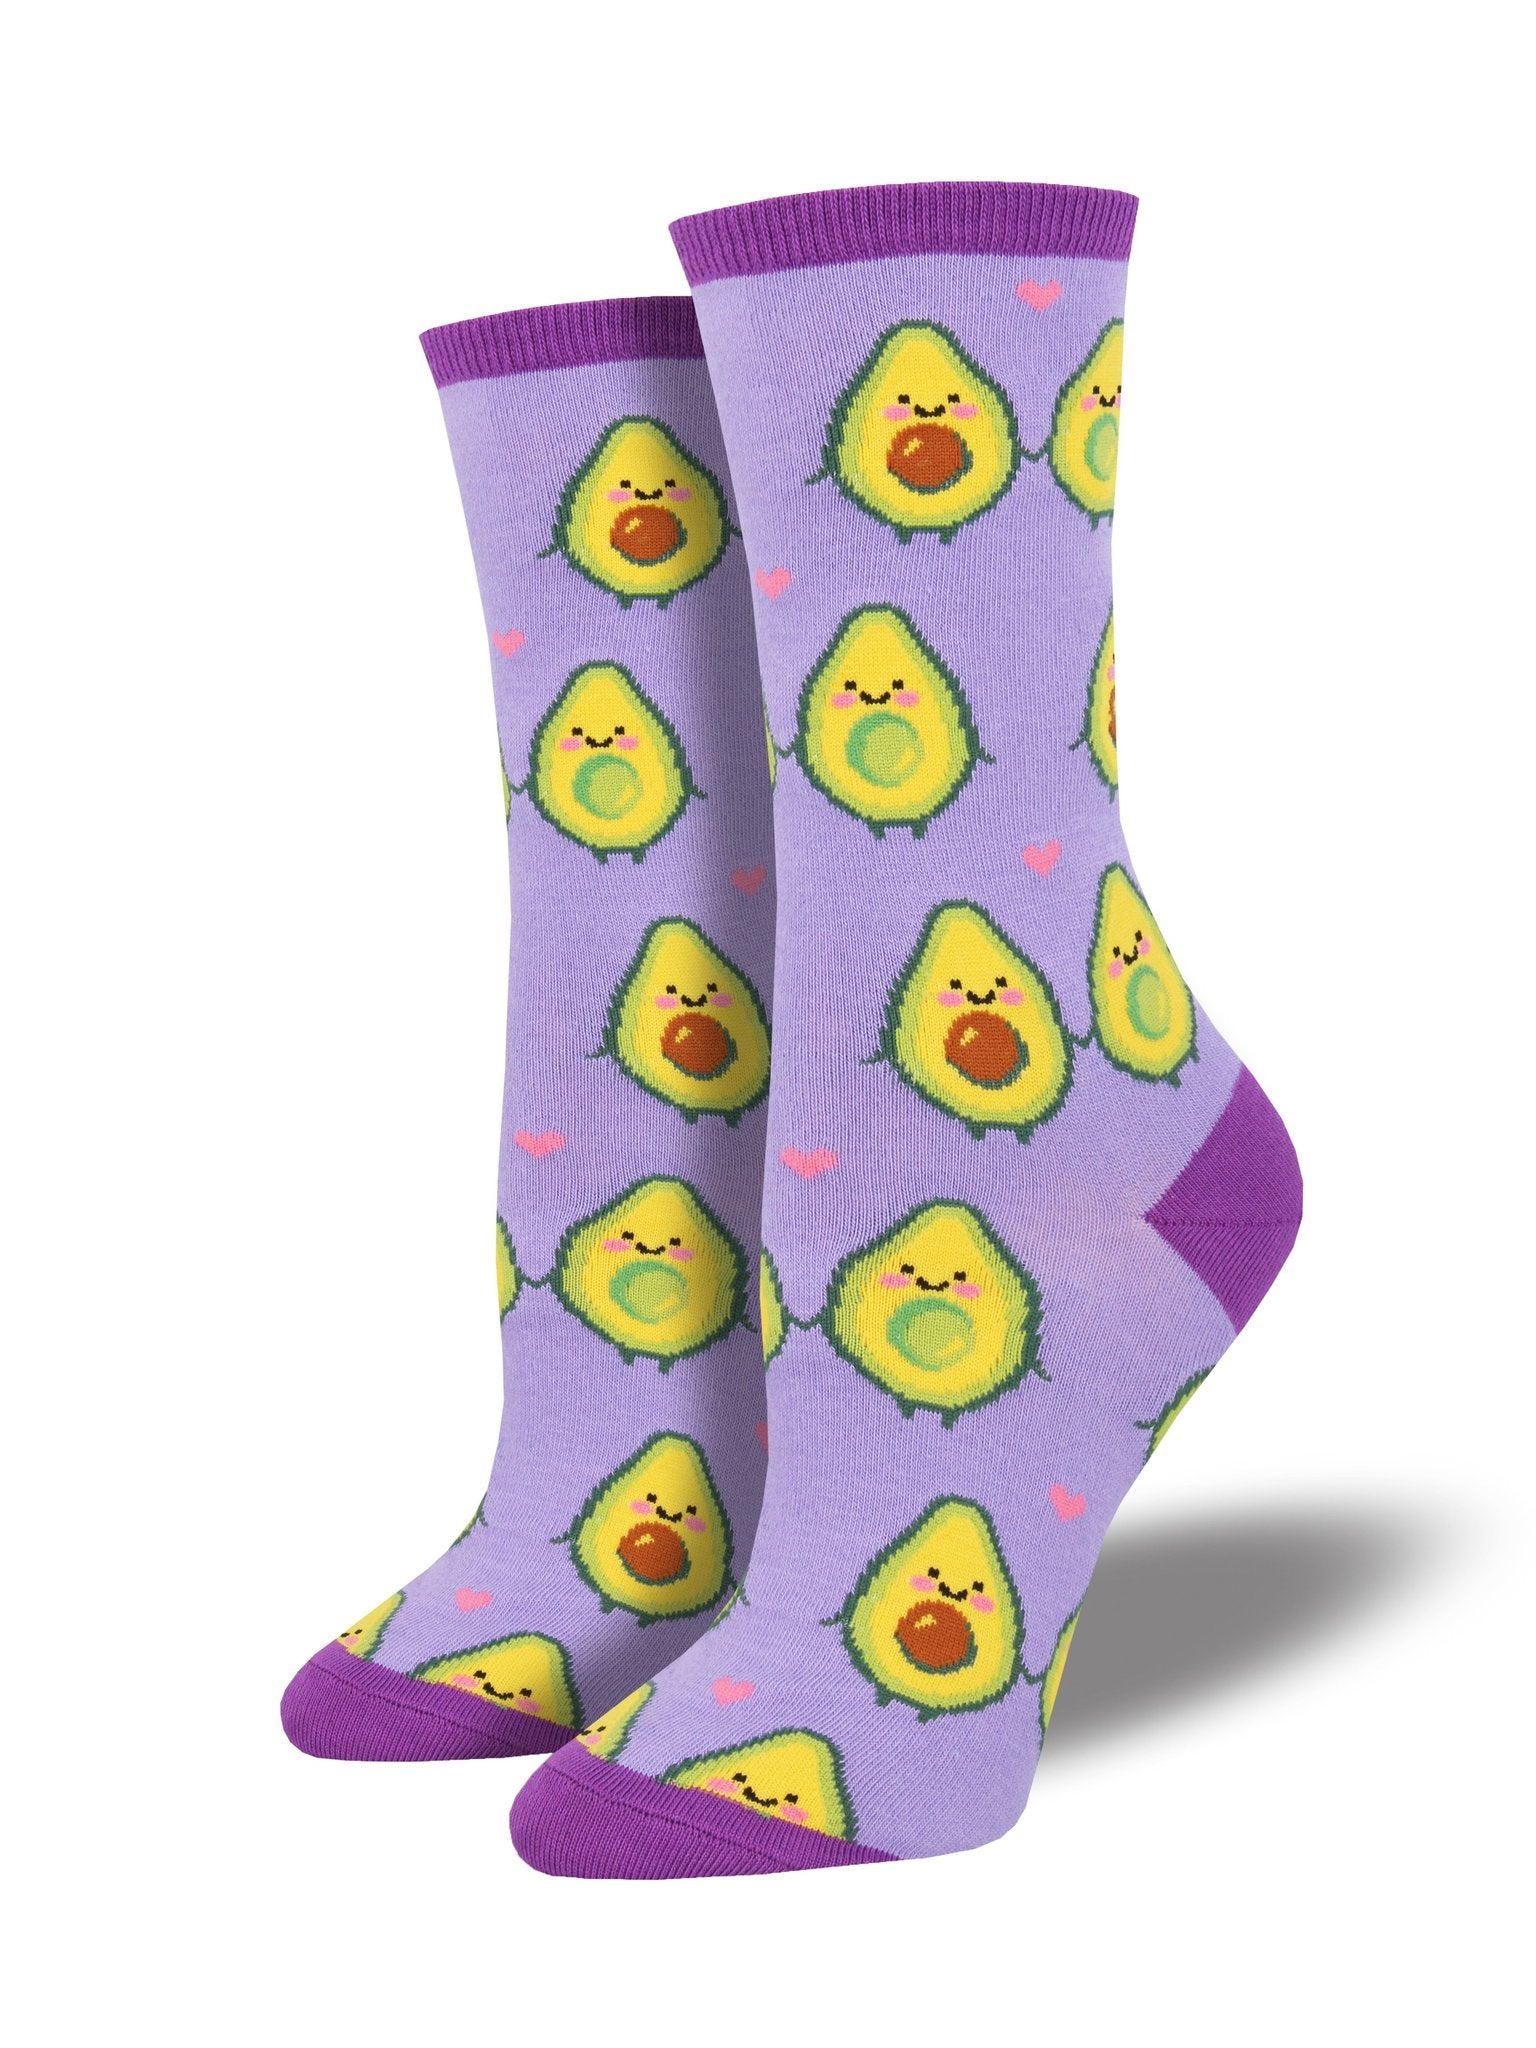 Avocado Buddy Socks | Delight